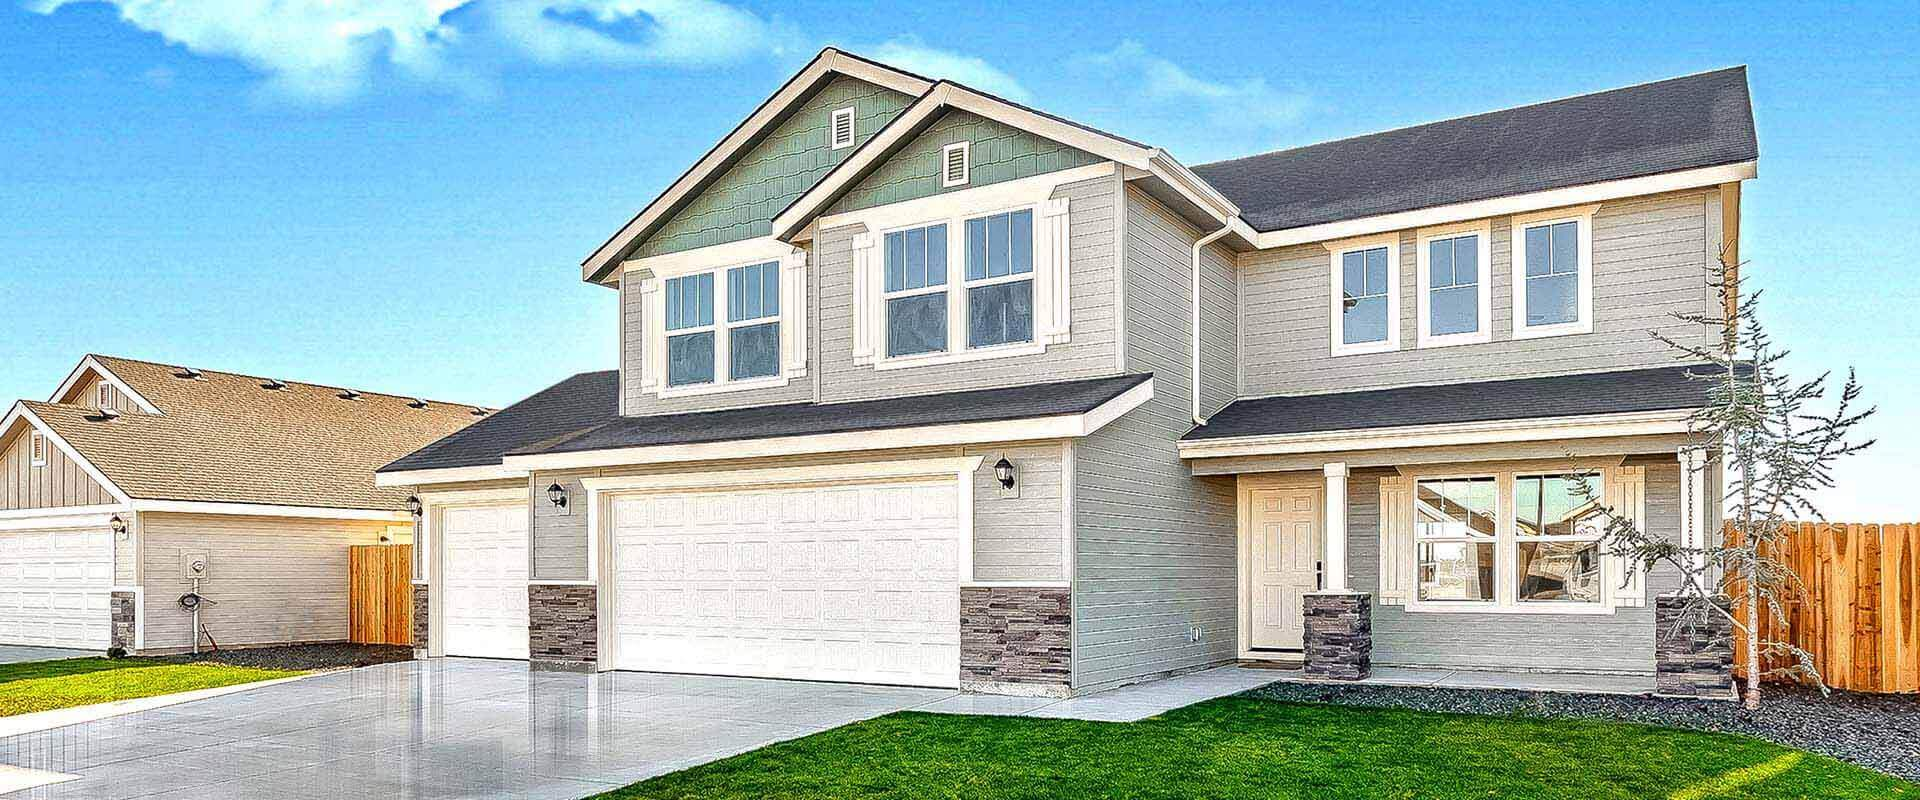 Trinity-new-homes-boise-idaho-hubble-homes.jpg